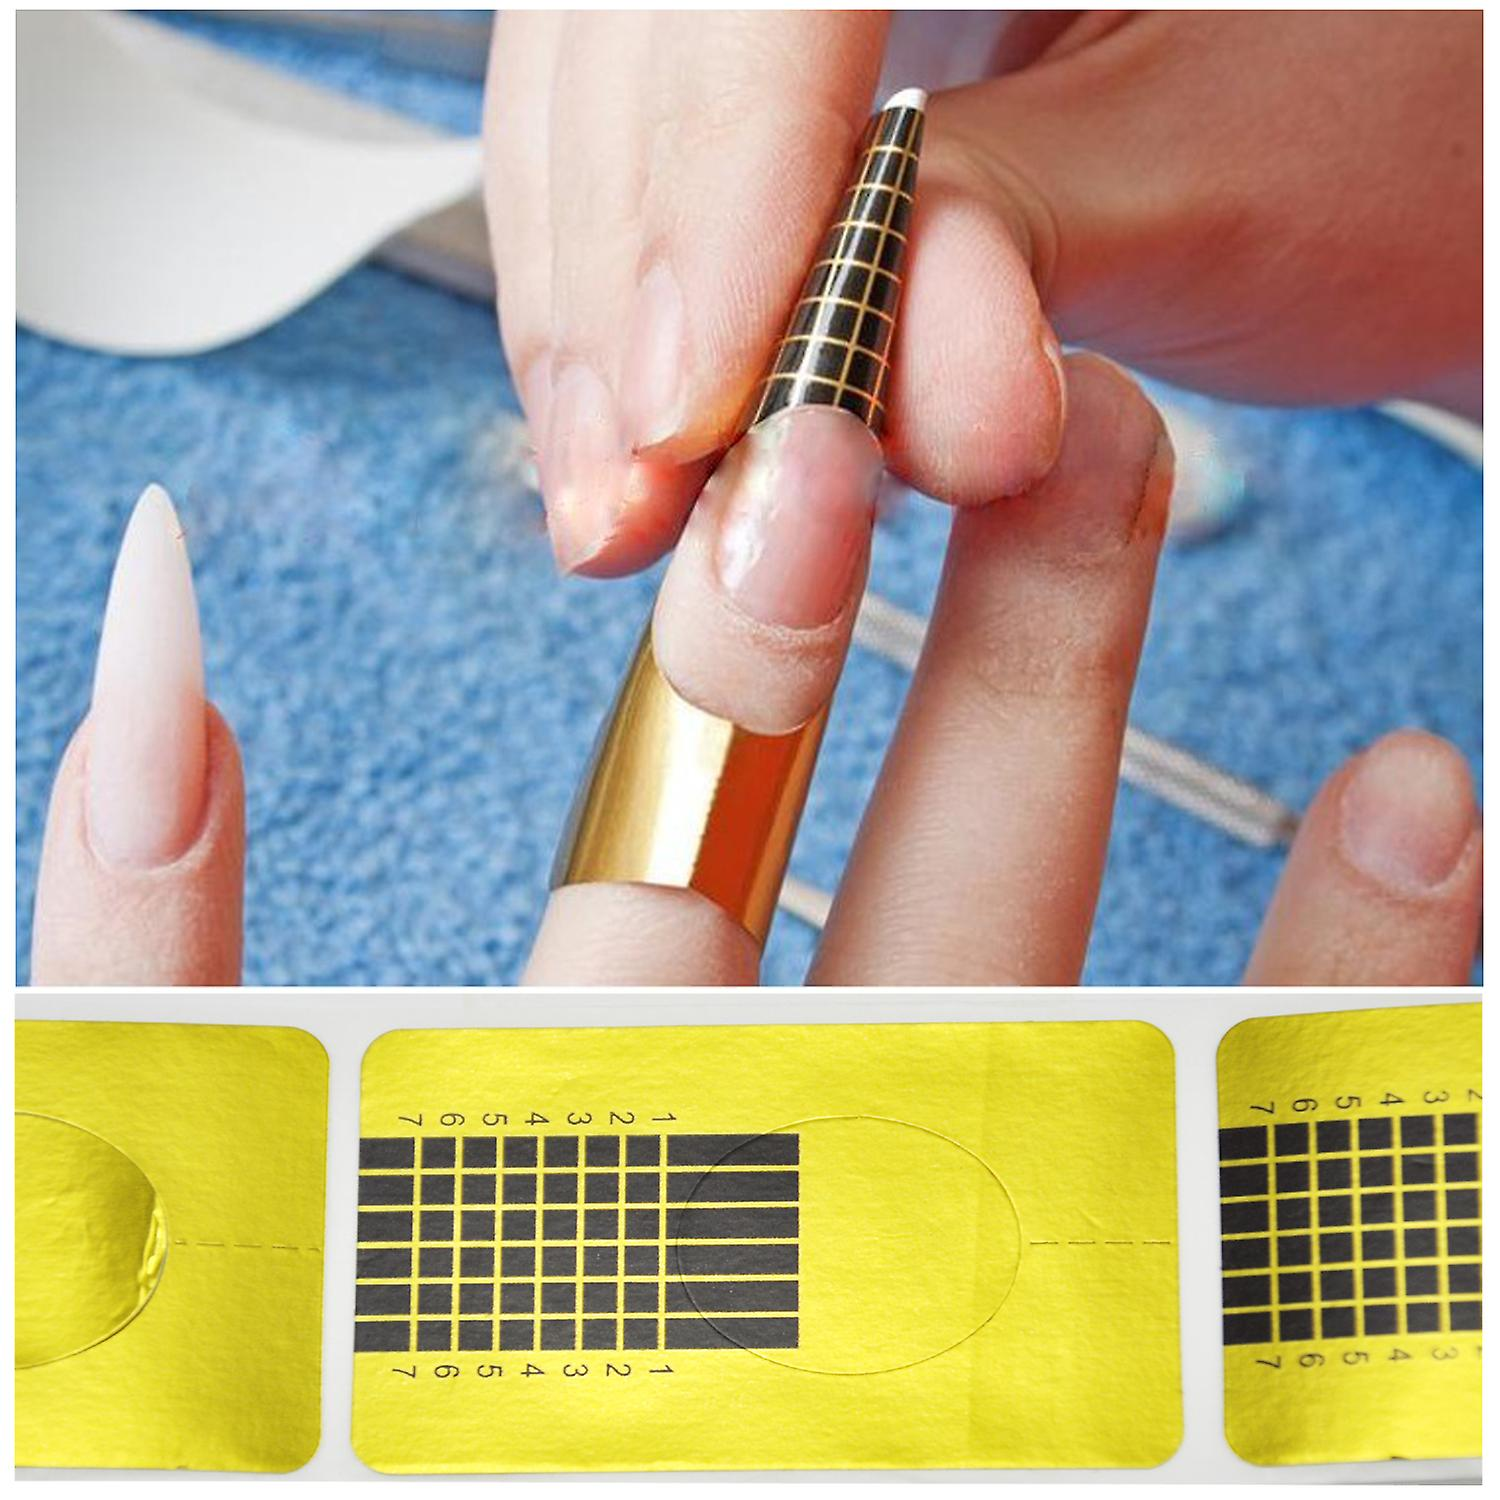 100 Salon Acrylic Gold Gel X Sculpting Nail Guide Tip Stickers Trixes Forms 9DIW2YEH